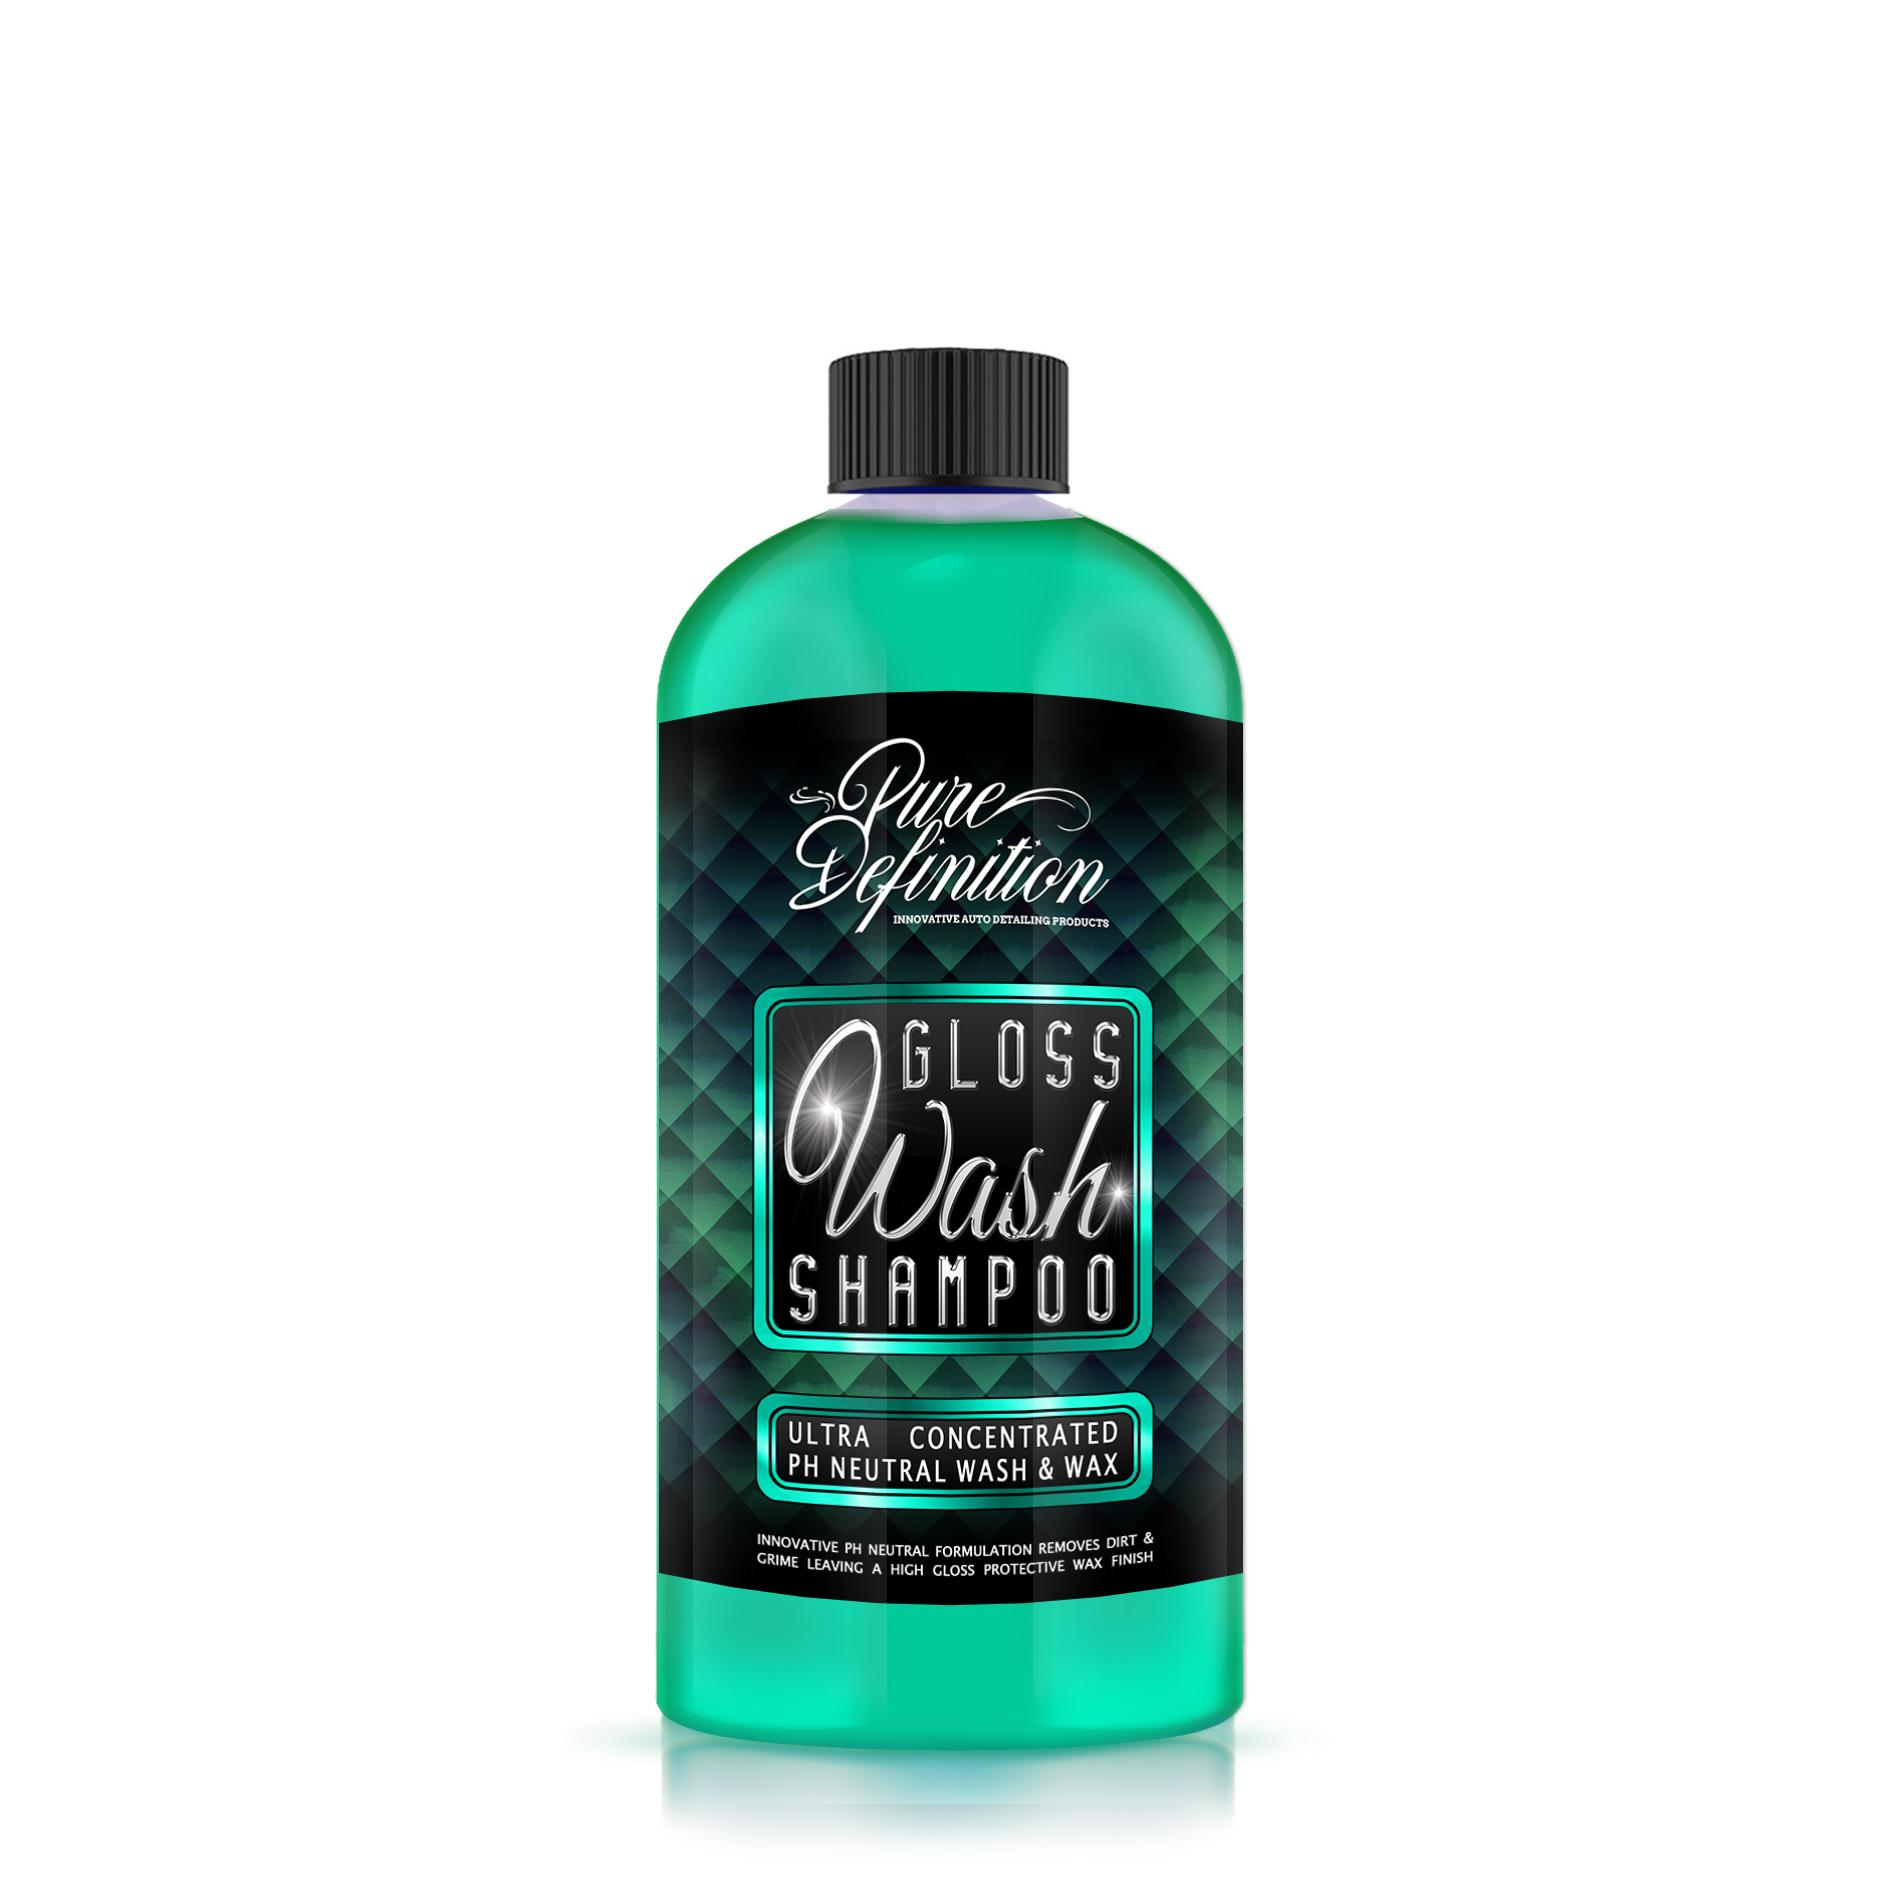 pure-definition-car-care-detailing-gloss-wash-shampoo-wash-and-wax-800ml